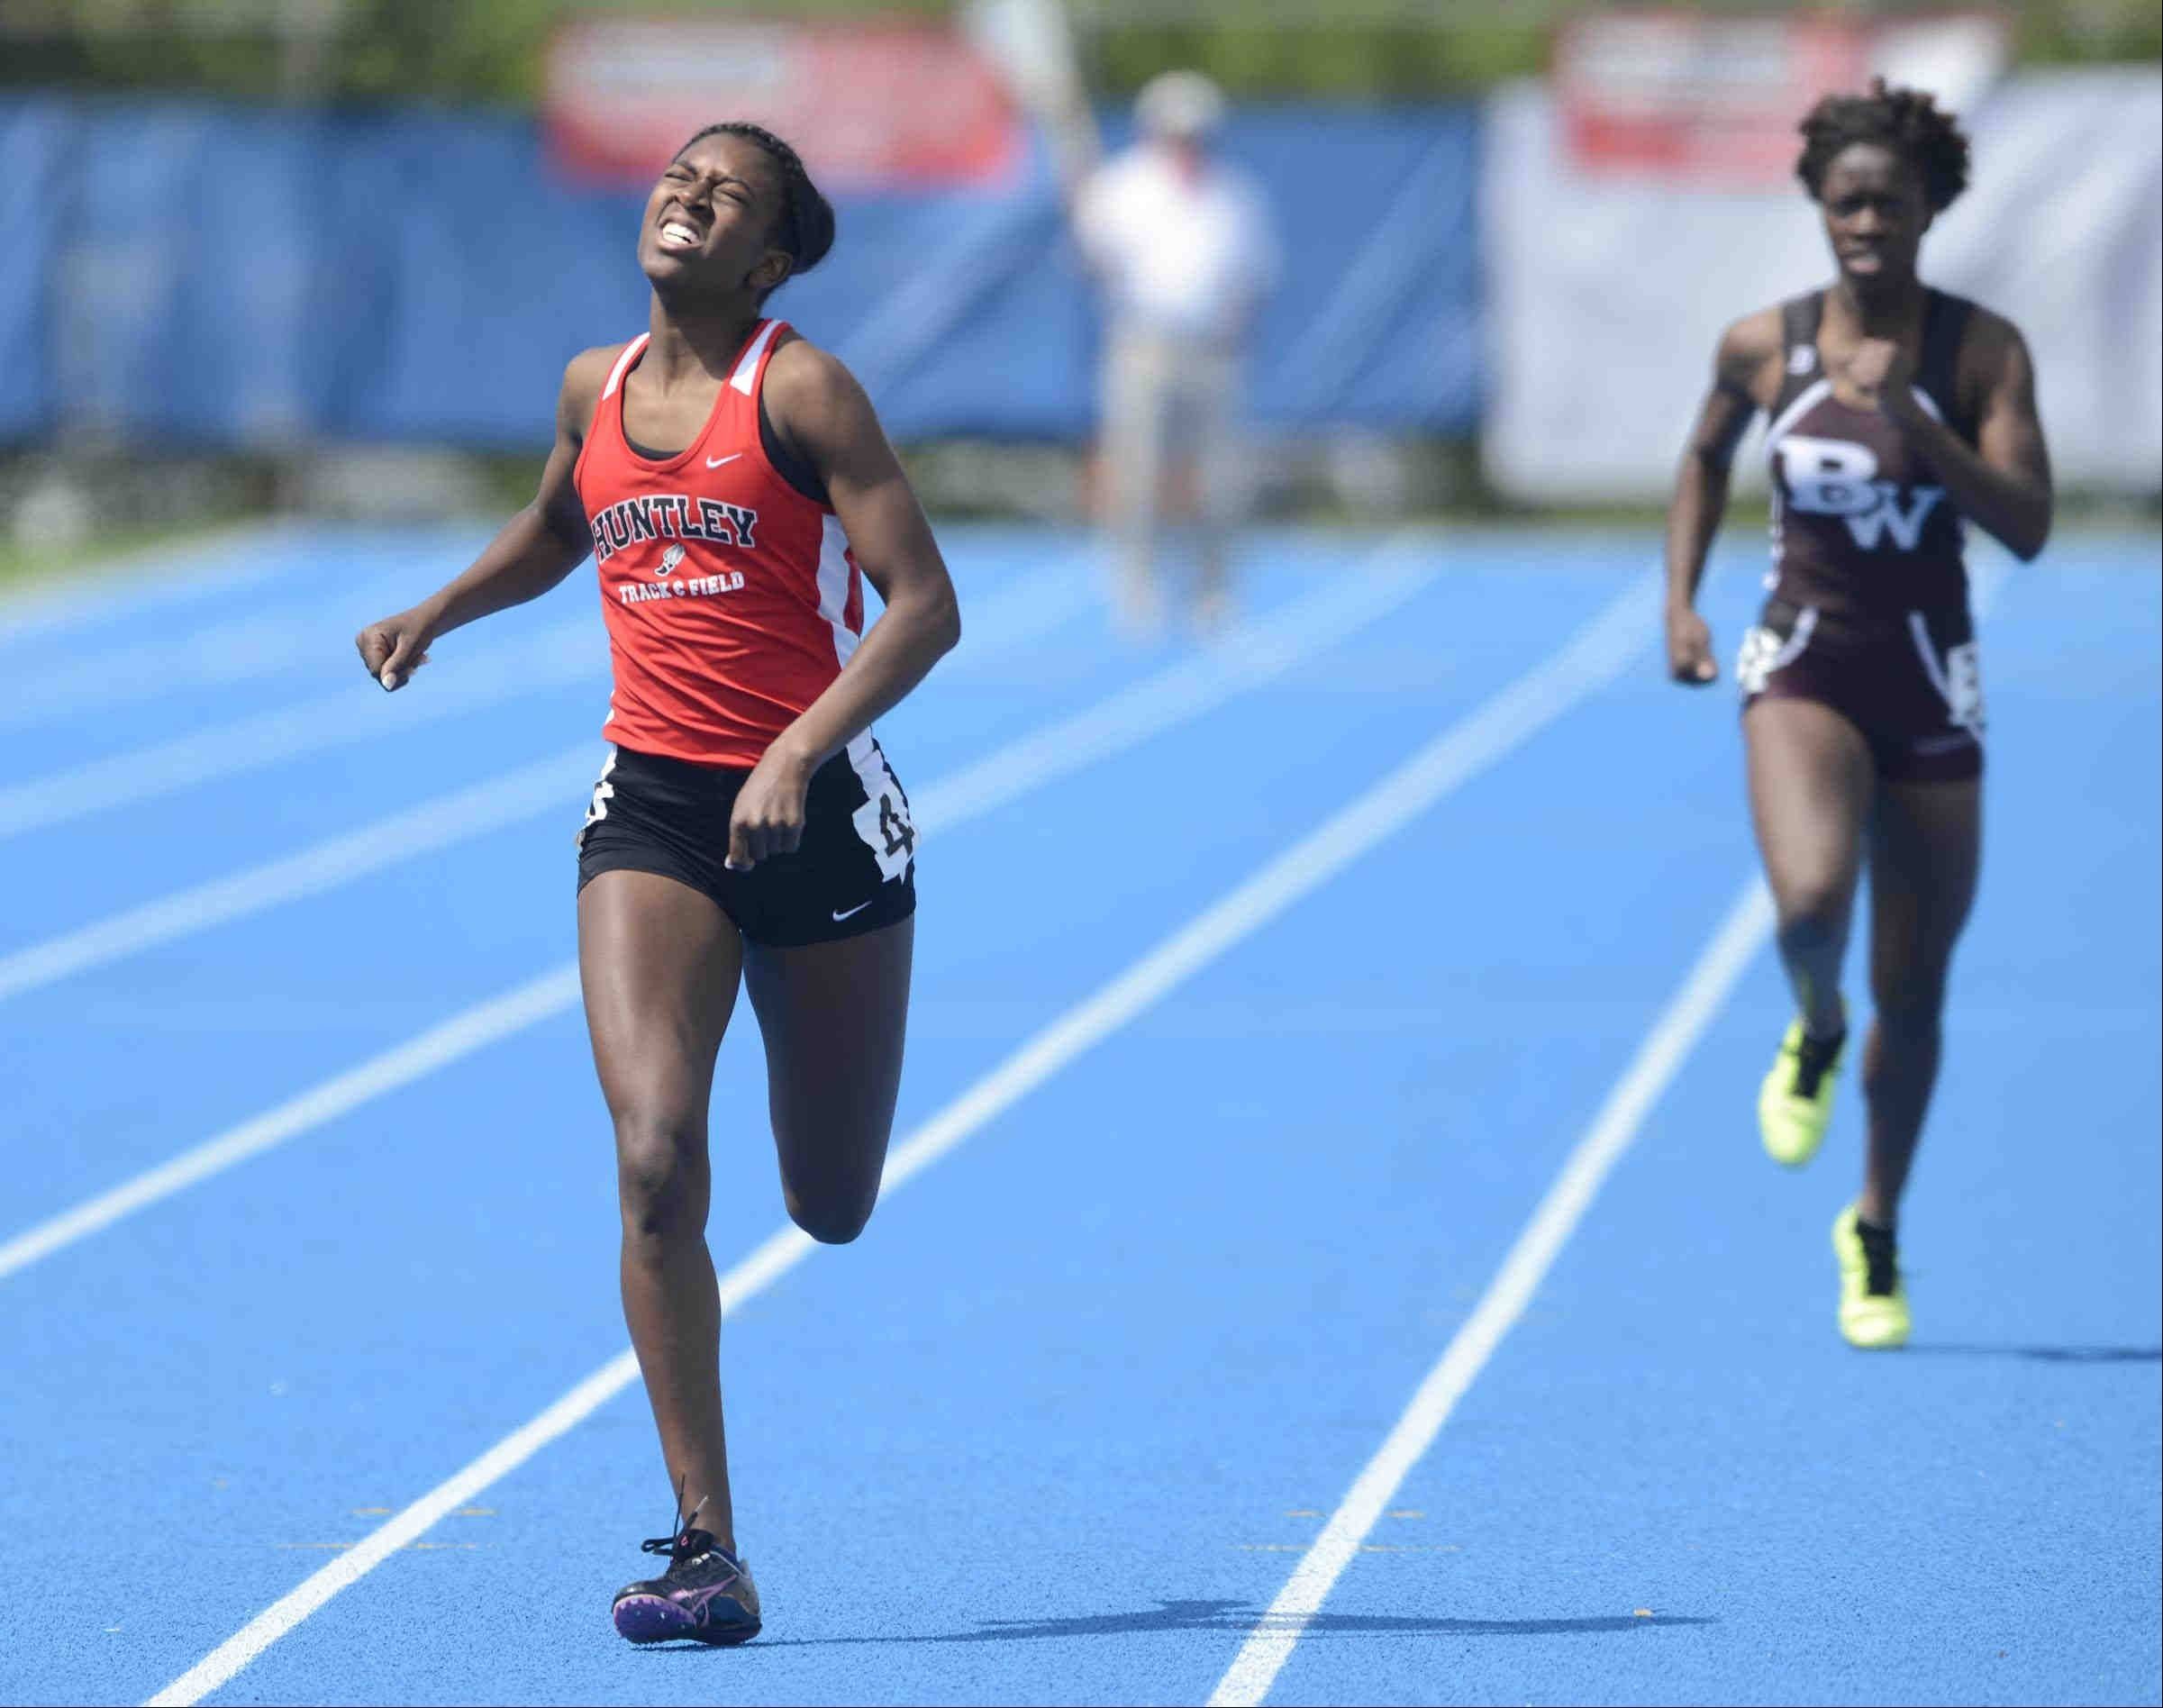 Huntley's Anthonia Moore strains to finish third in her heat of the 400 meter dash Friday at the Class 3A girls state track and field preliminaries at O'Brien Stadium at Eastern Illinois University in Charleston. Moore qualified for today's finals.